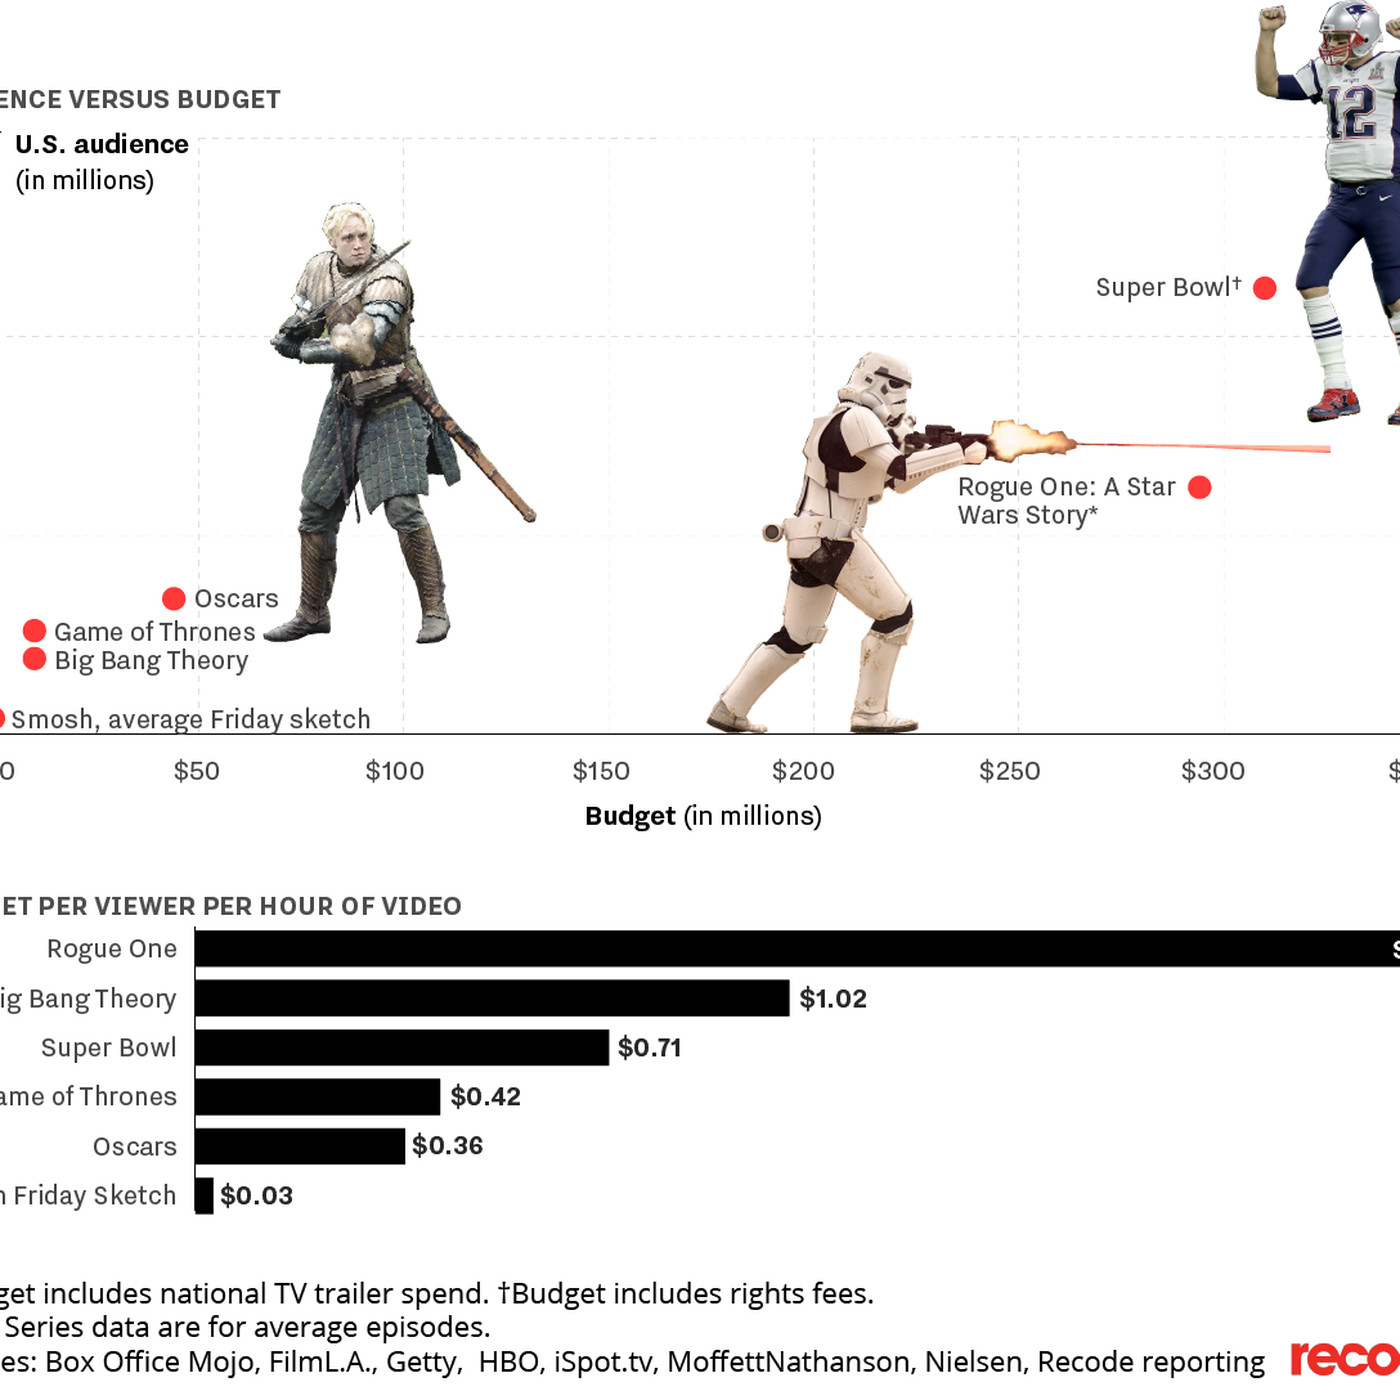 This Is How The Game Of Thrones Budget And Audience Compare With Other Big Network Blockbusters Recode